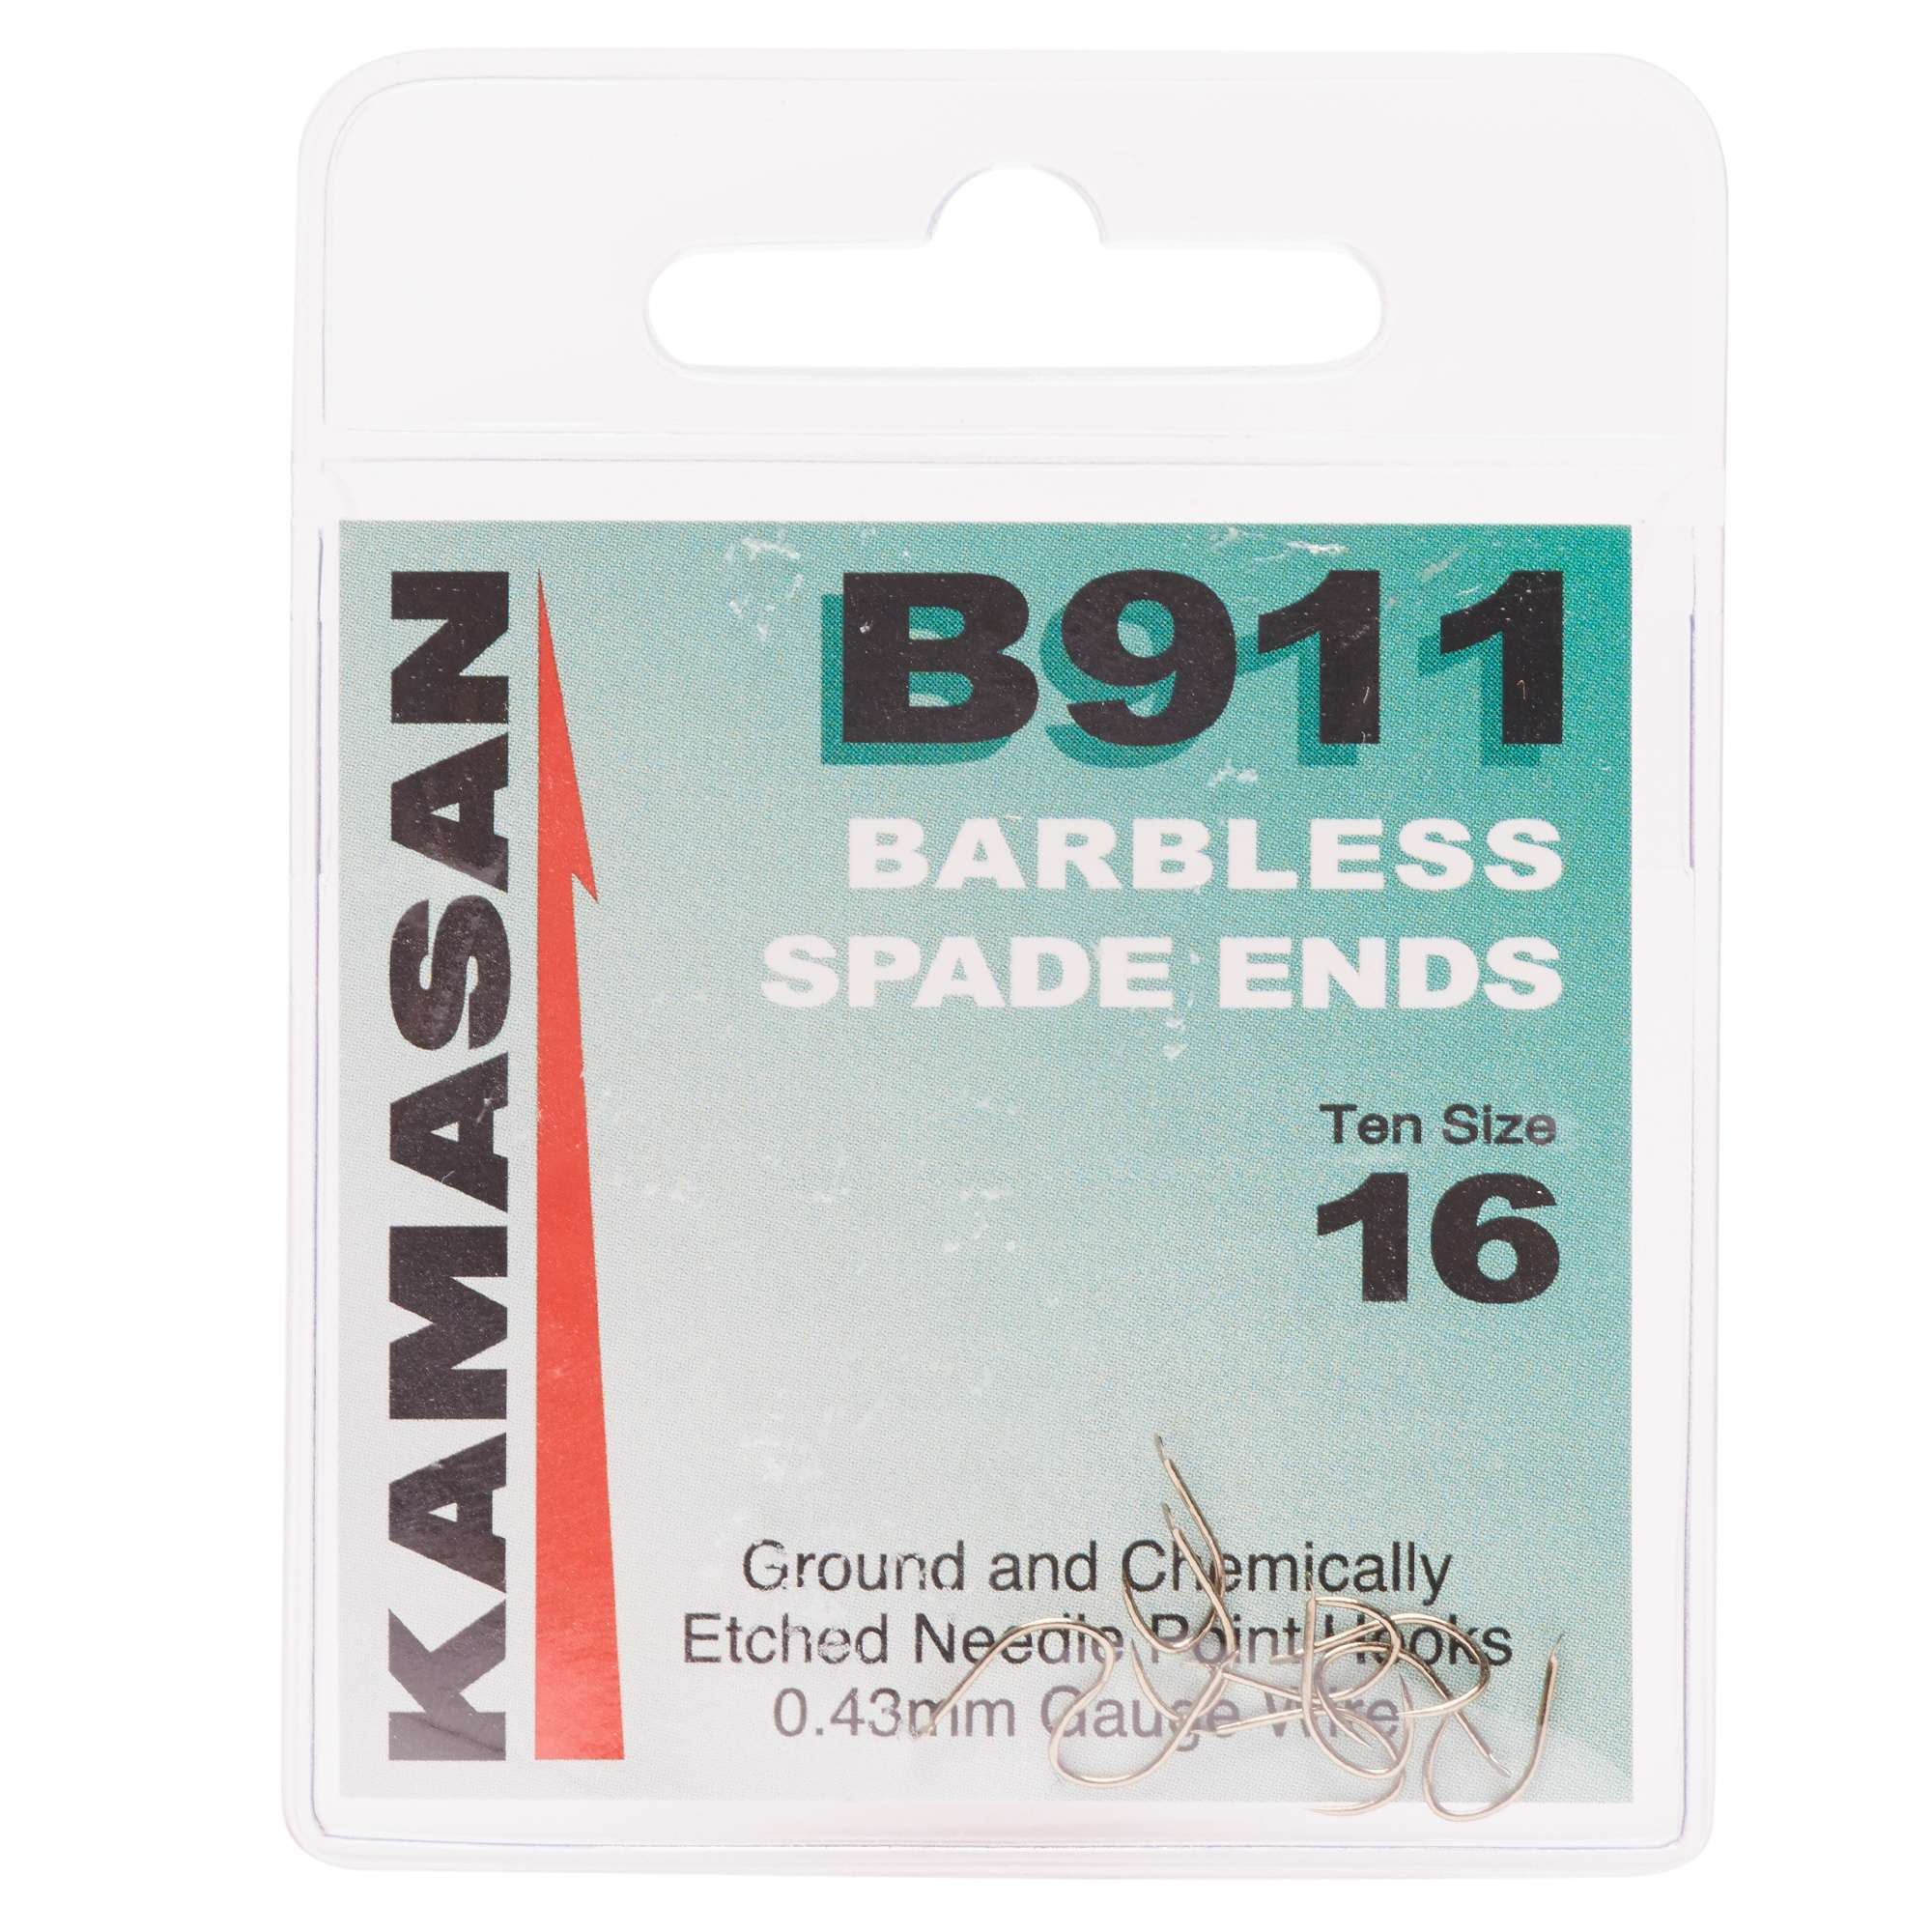 KAMASAN B911 Extra Strong Eyed Fishing Hooks - Size 16